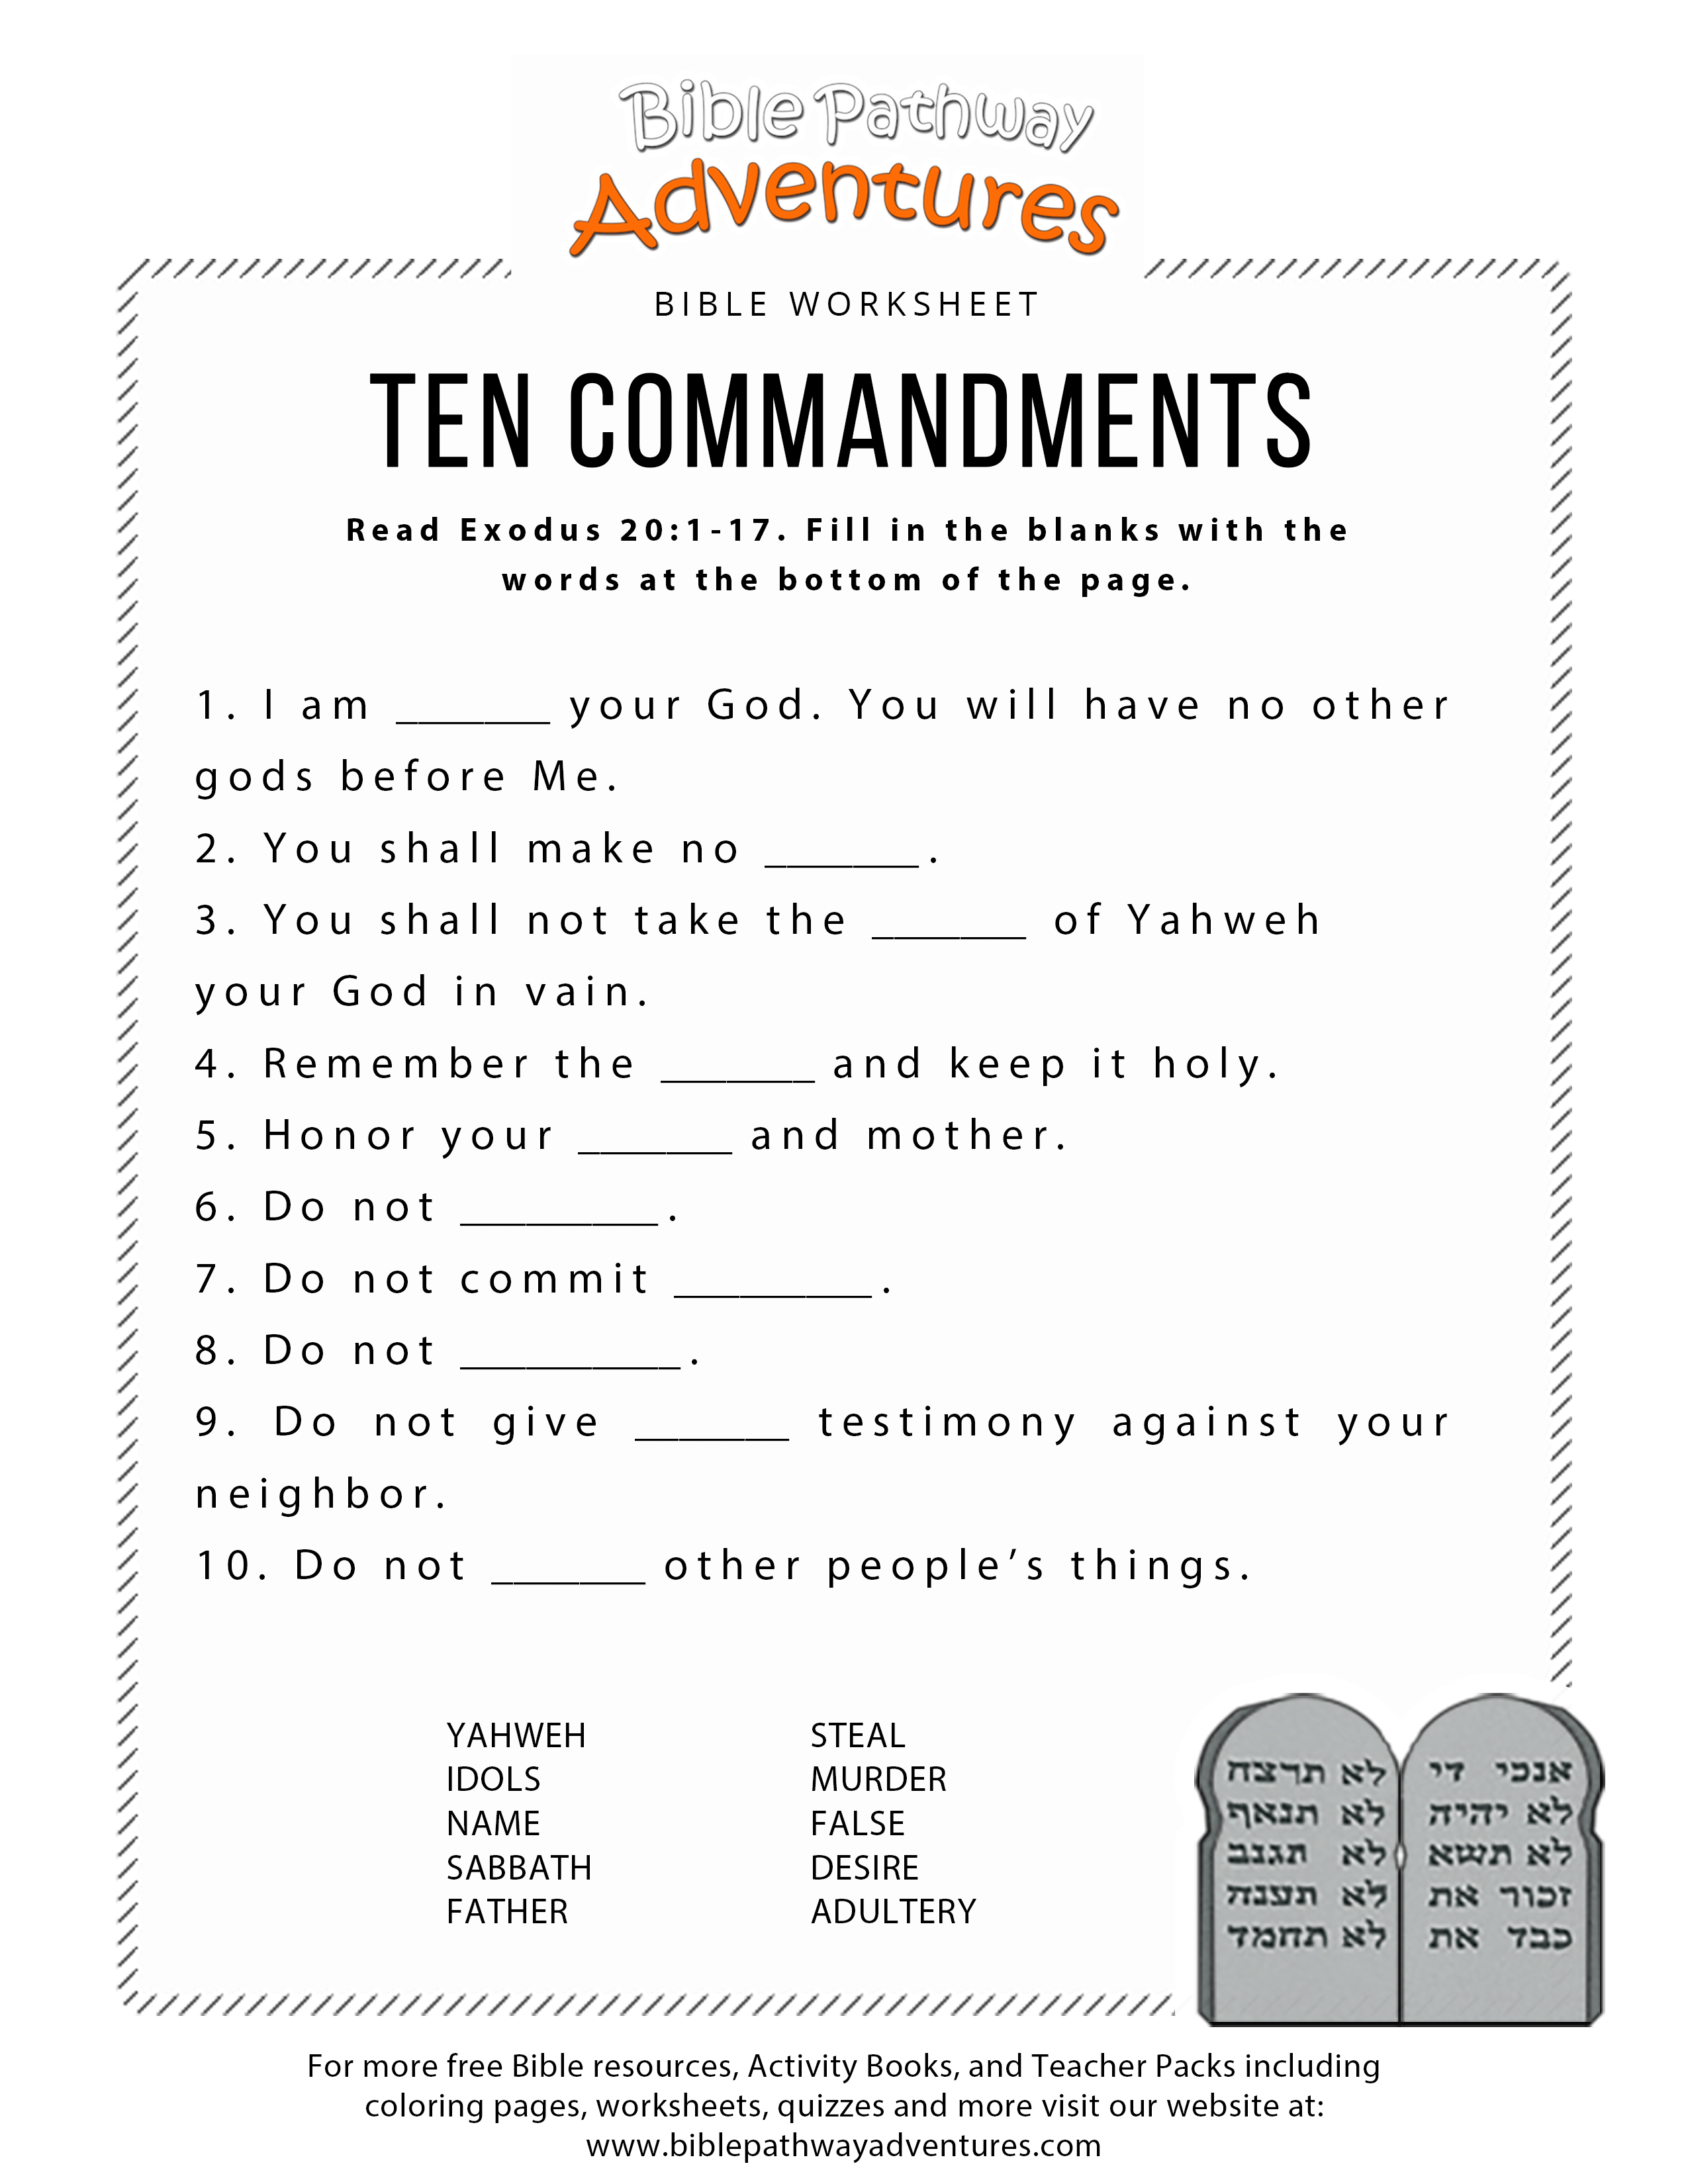 Ten Commandments Worksheet For Kids - Free Printable Ten Commandments Coloring Pages